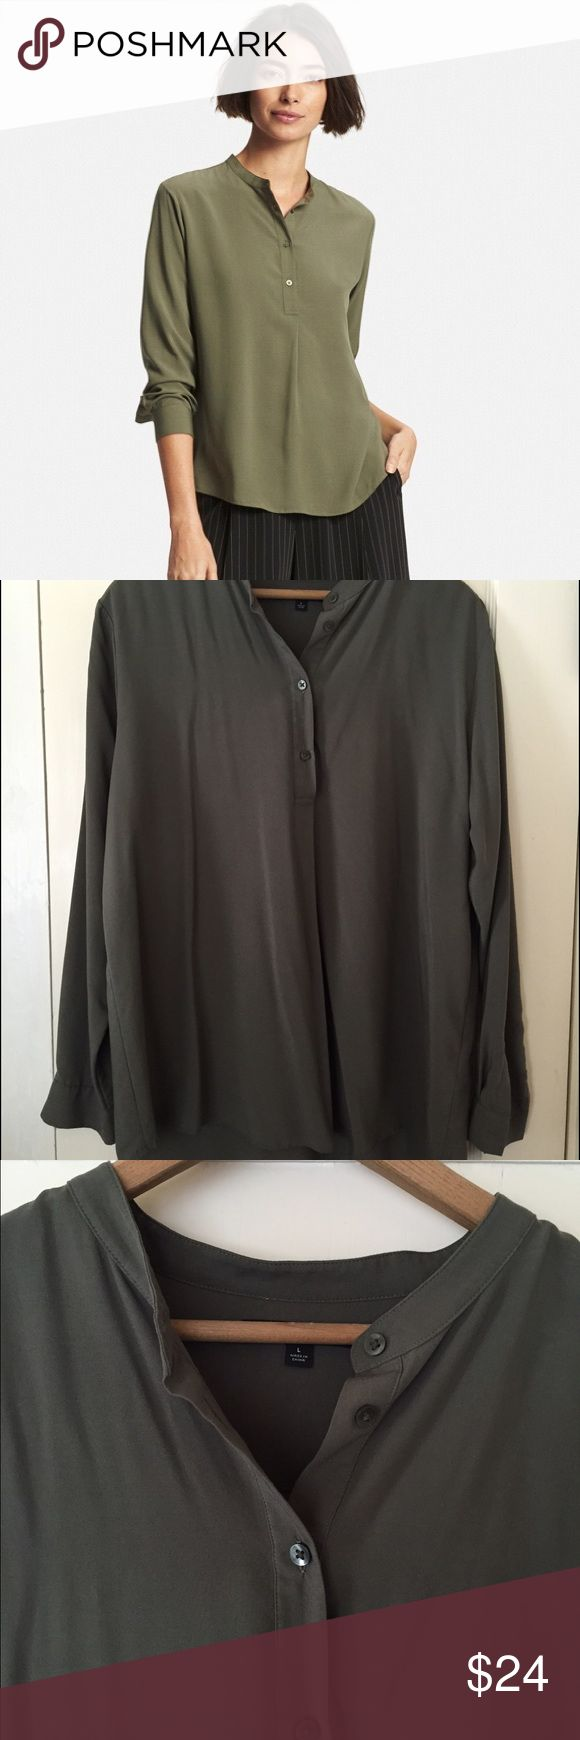 Uniqlo Rayon Stand Collar Longsleeve Blouse Green Collarless rayon blouse by Uniqlo. Soft olive green color. Size large. Gently worn. Super soft and flattering. Uniqlo Tops Blouses